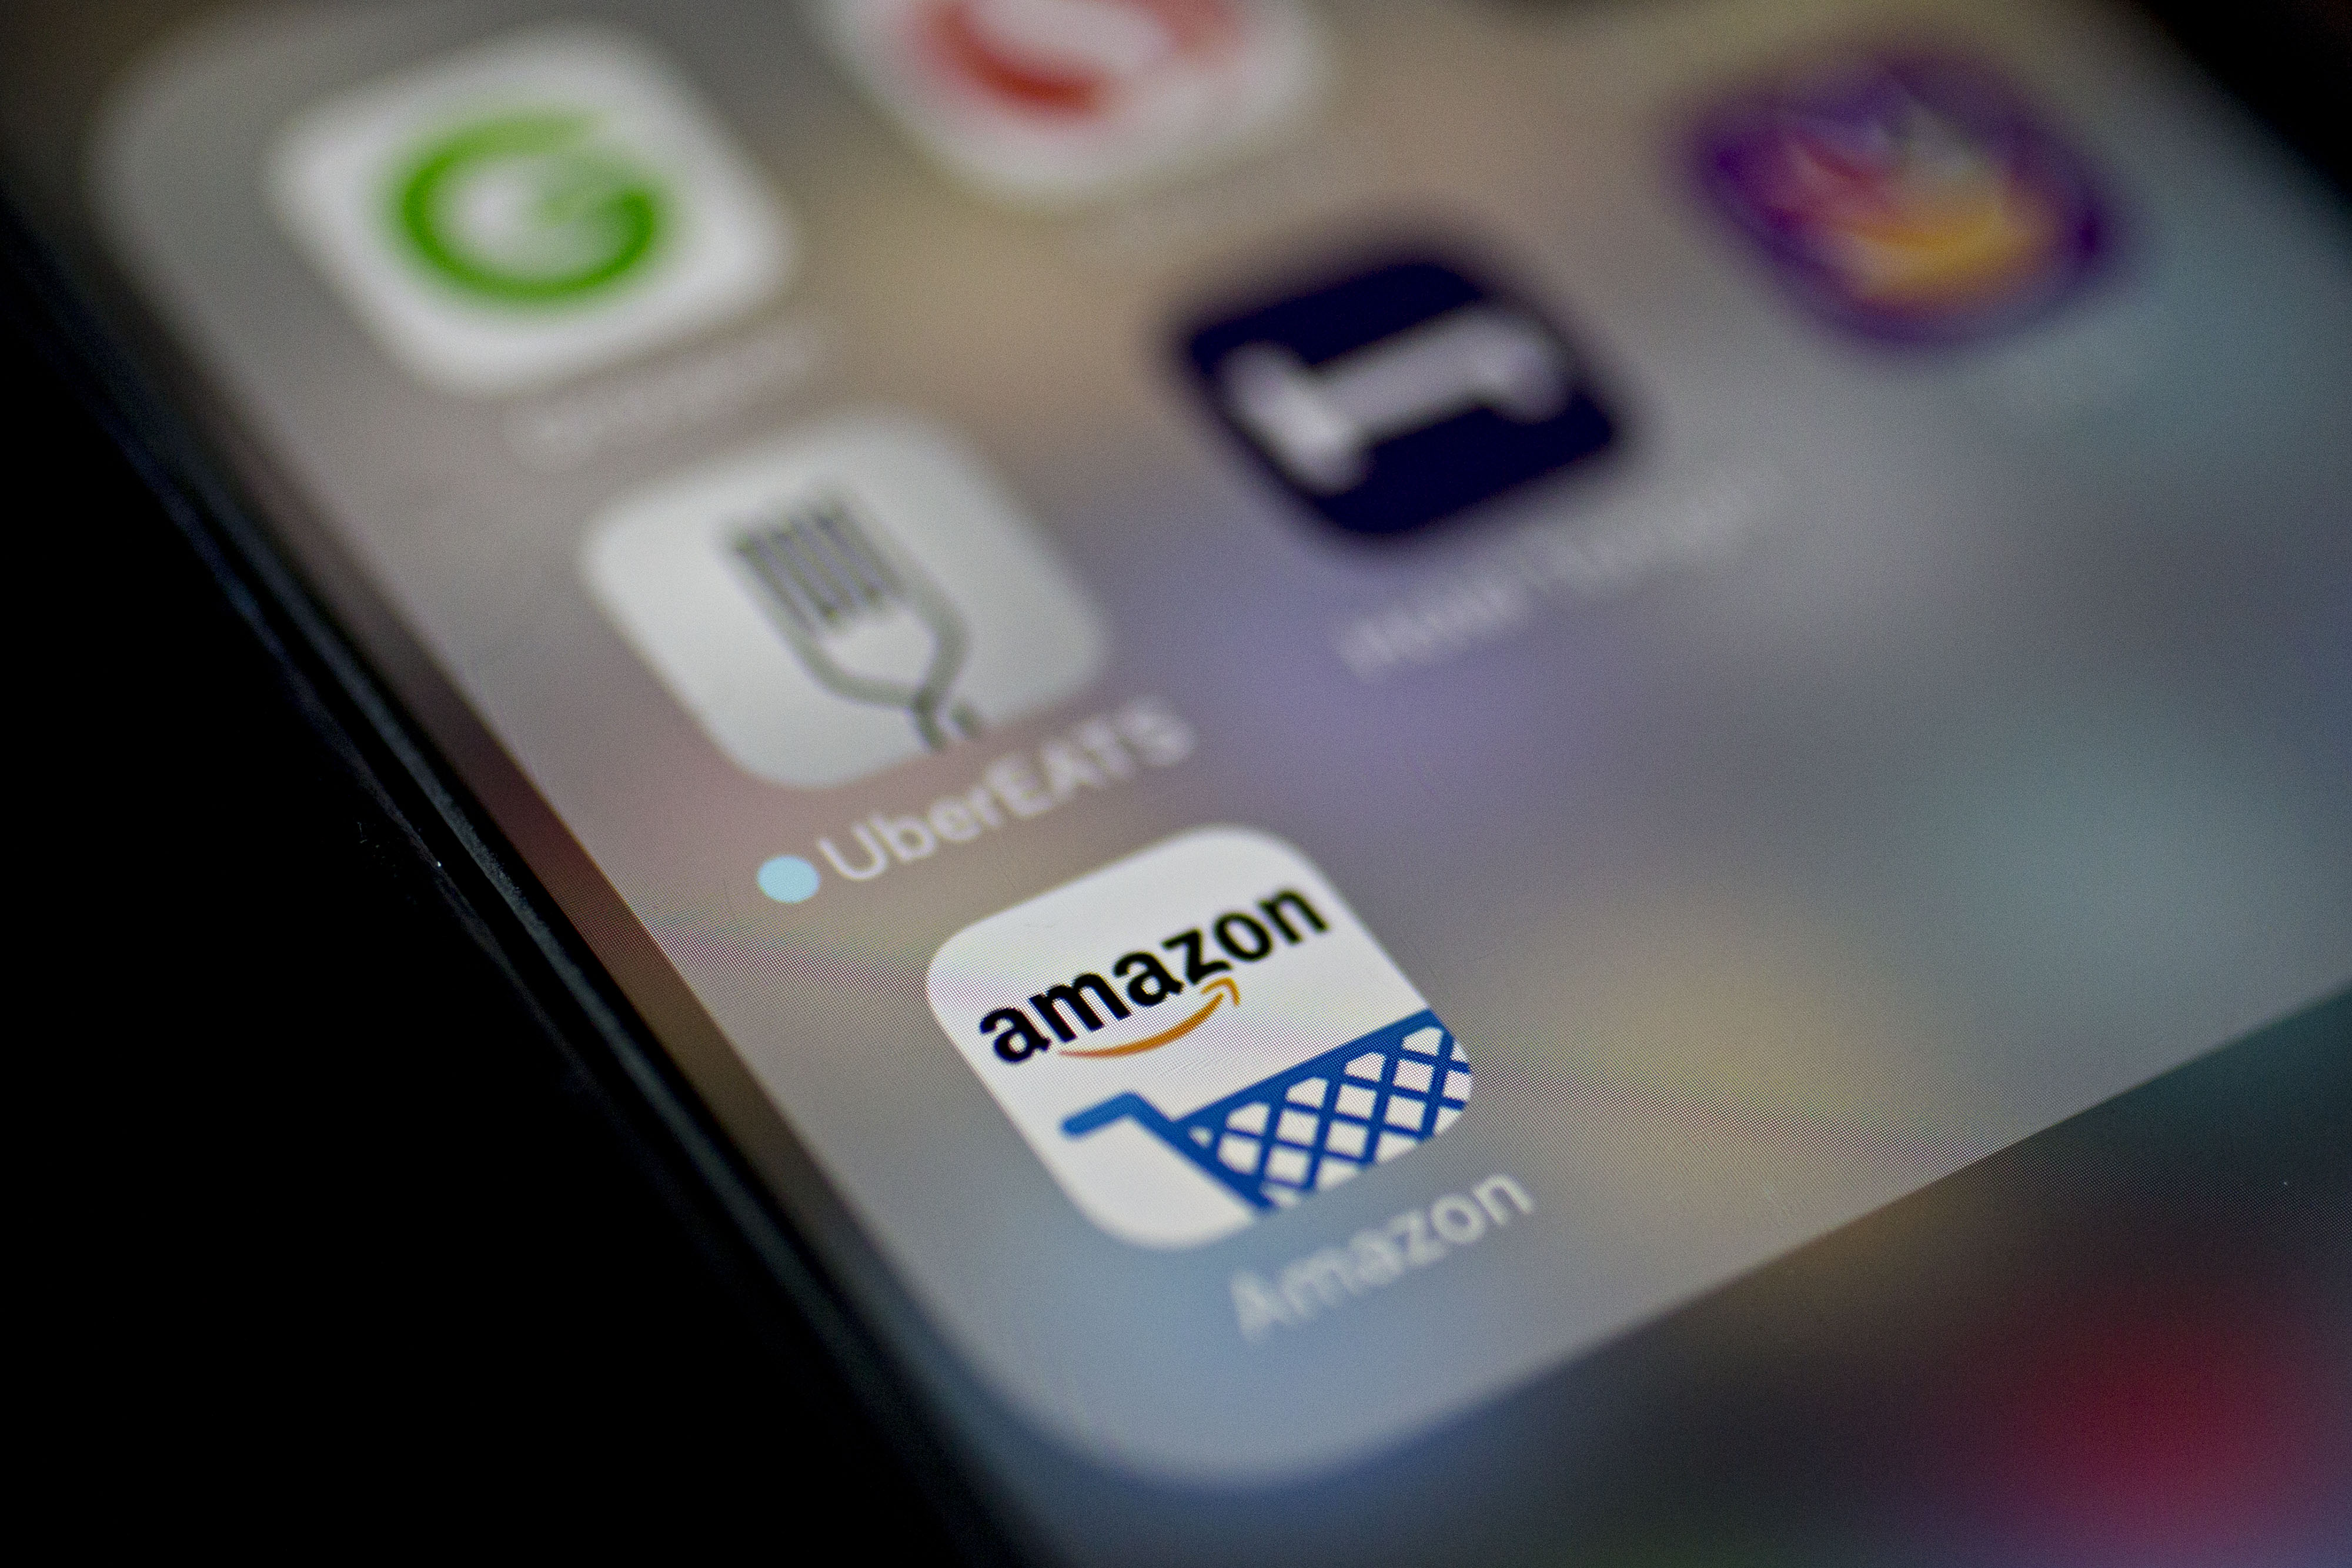 The Amazon.com Inc. application icon is displayed on an Apple Inc. iPhone in Washington, D.C., U.S., on Monday, Dec. 5, 2016.